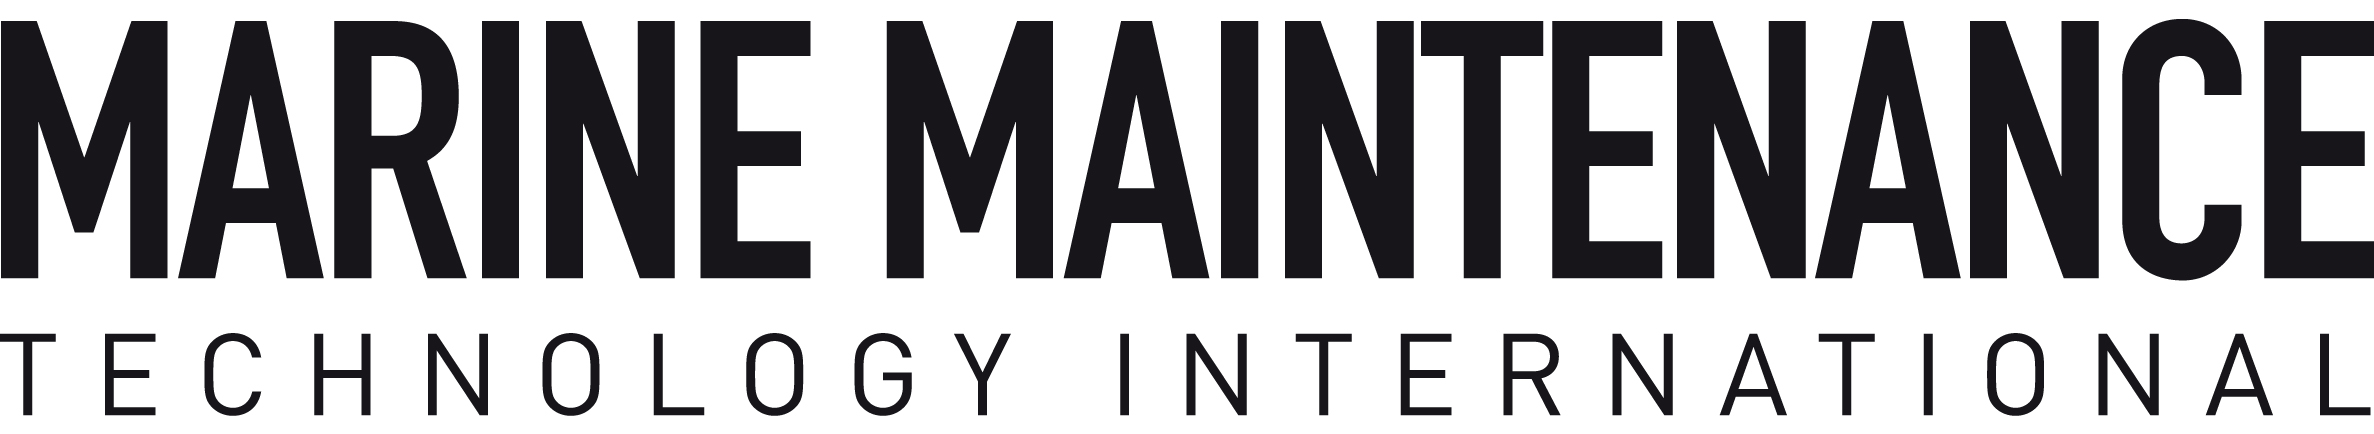 Marine Maintenance Technology International Logo